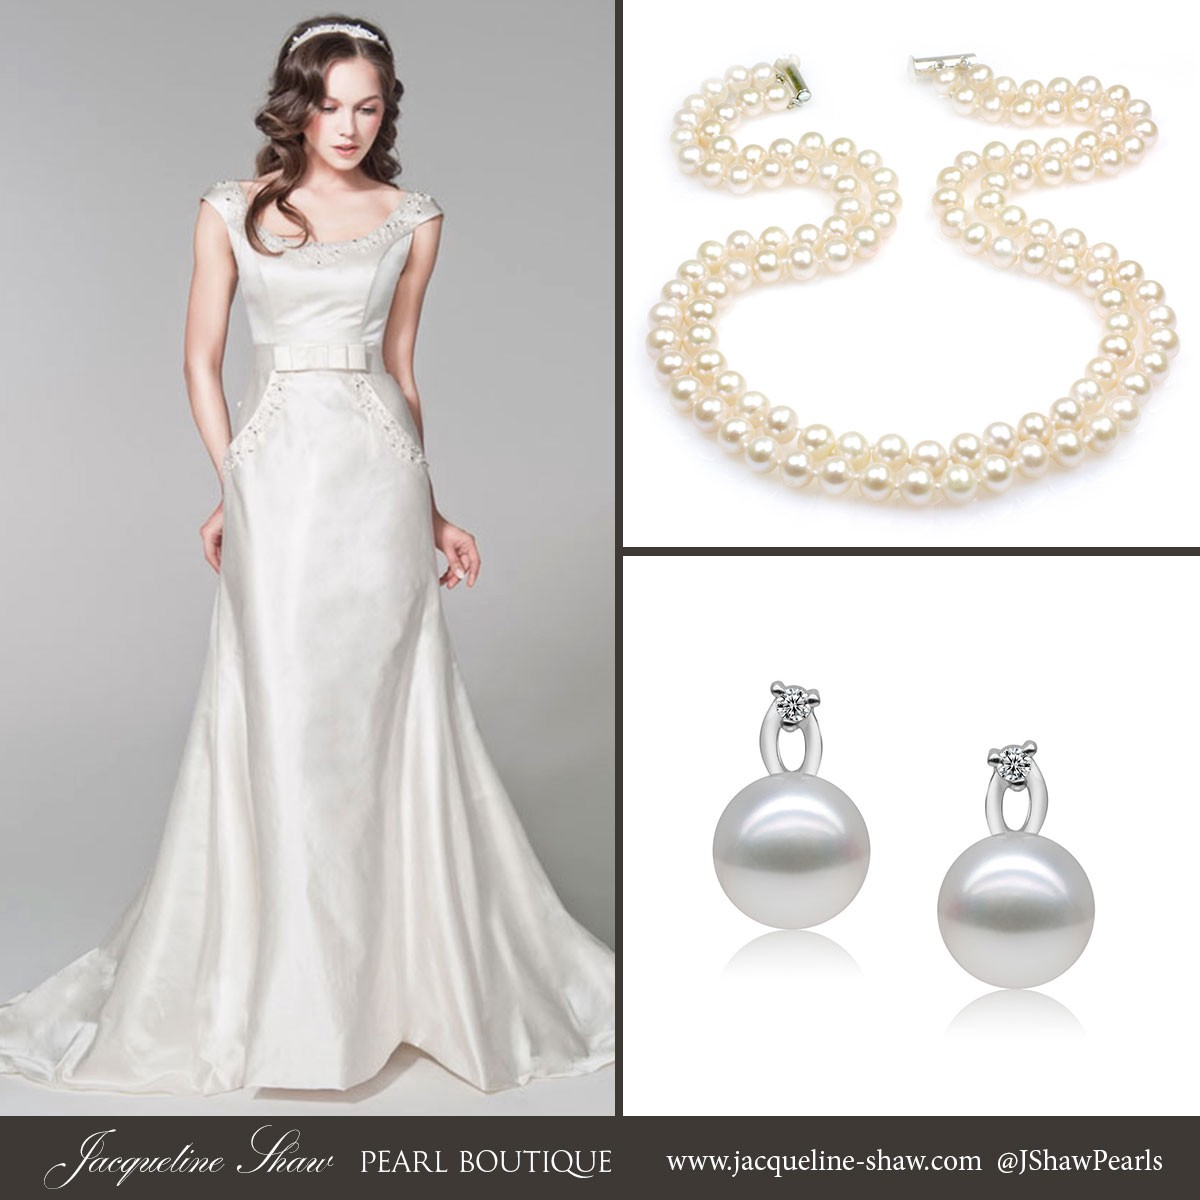 Claire Double Strand Pearl Necklace By Jacqueline Shaw With A Bateau Neckline Wedding Dress